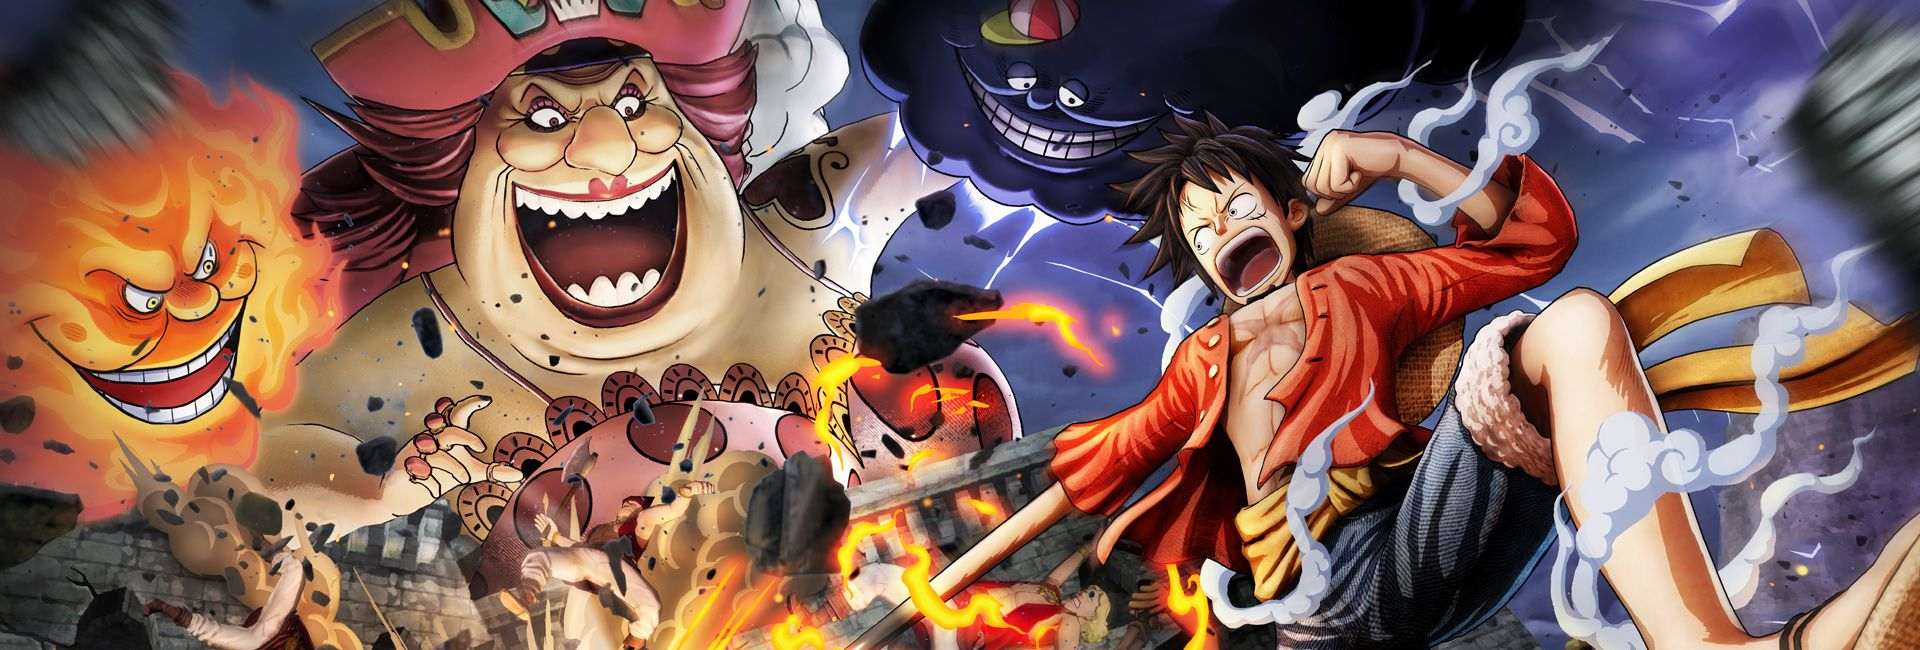 Pirate Games 2020.One Piece Pirate Warriors 4 Coming To Nintendo Switch On